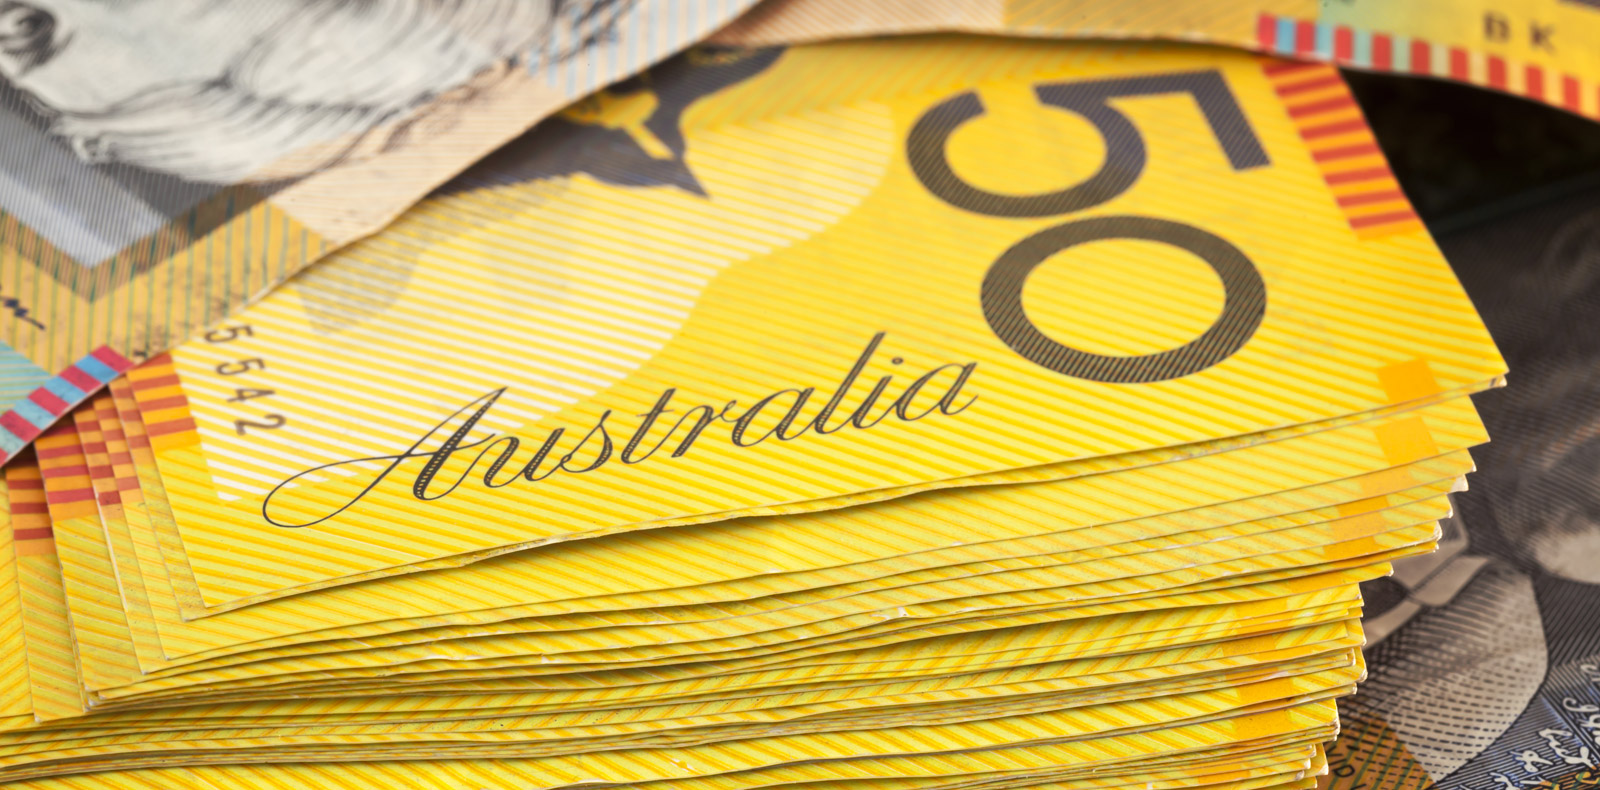 A volatile week for the Australian Dollar as the Reserve Bank of New Zealand surprises markets with a 50 basis point interest rate cut. Will the RBA follow suite?